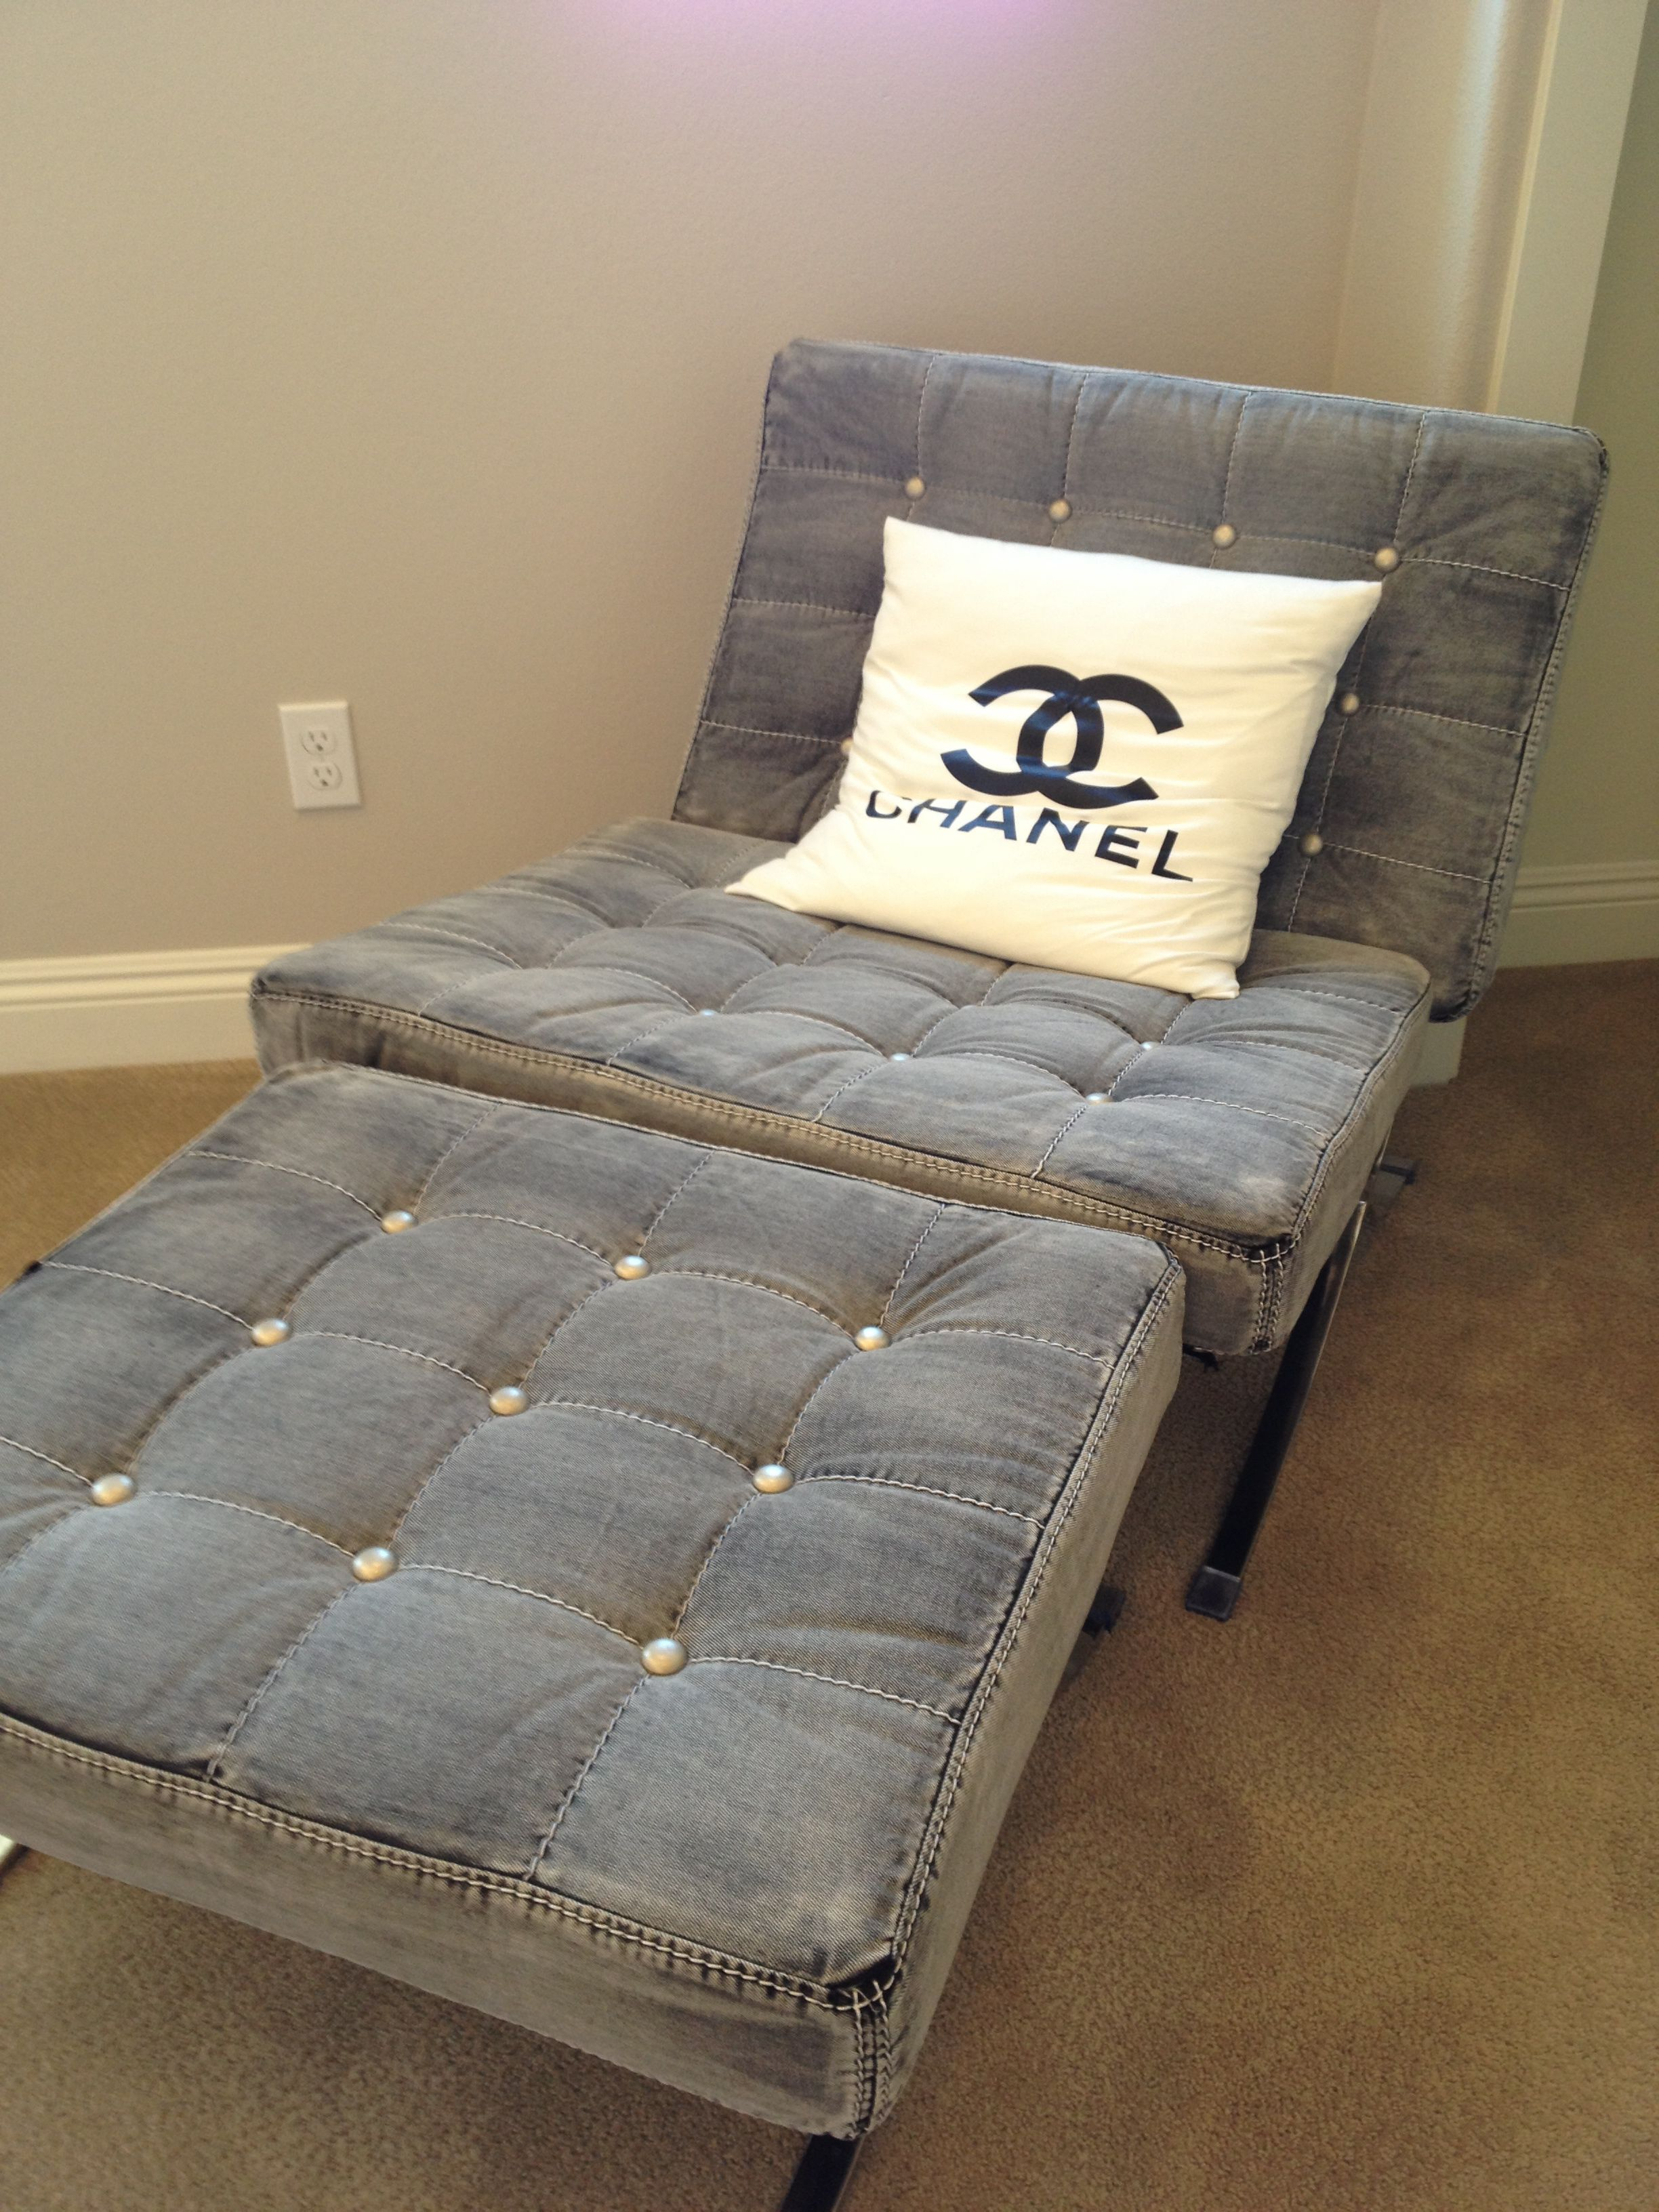 Room. Fashion inspired home decor   Chanel inspired denim chair with